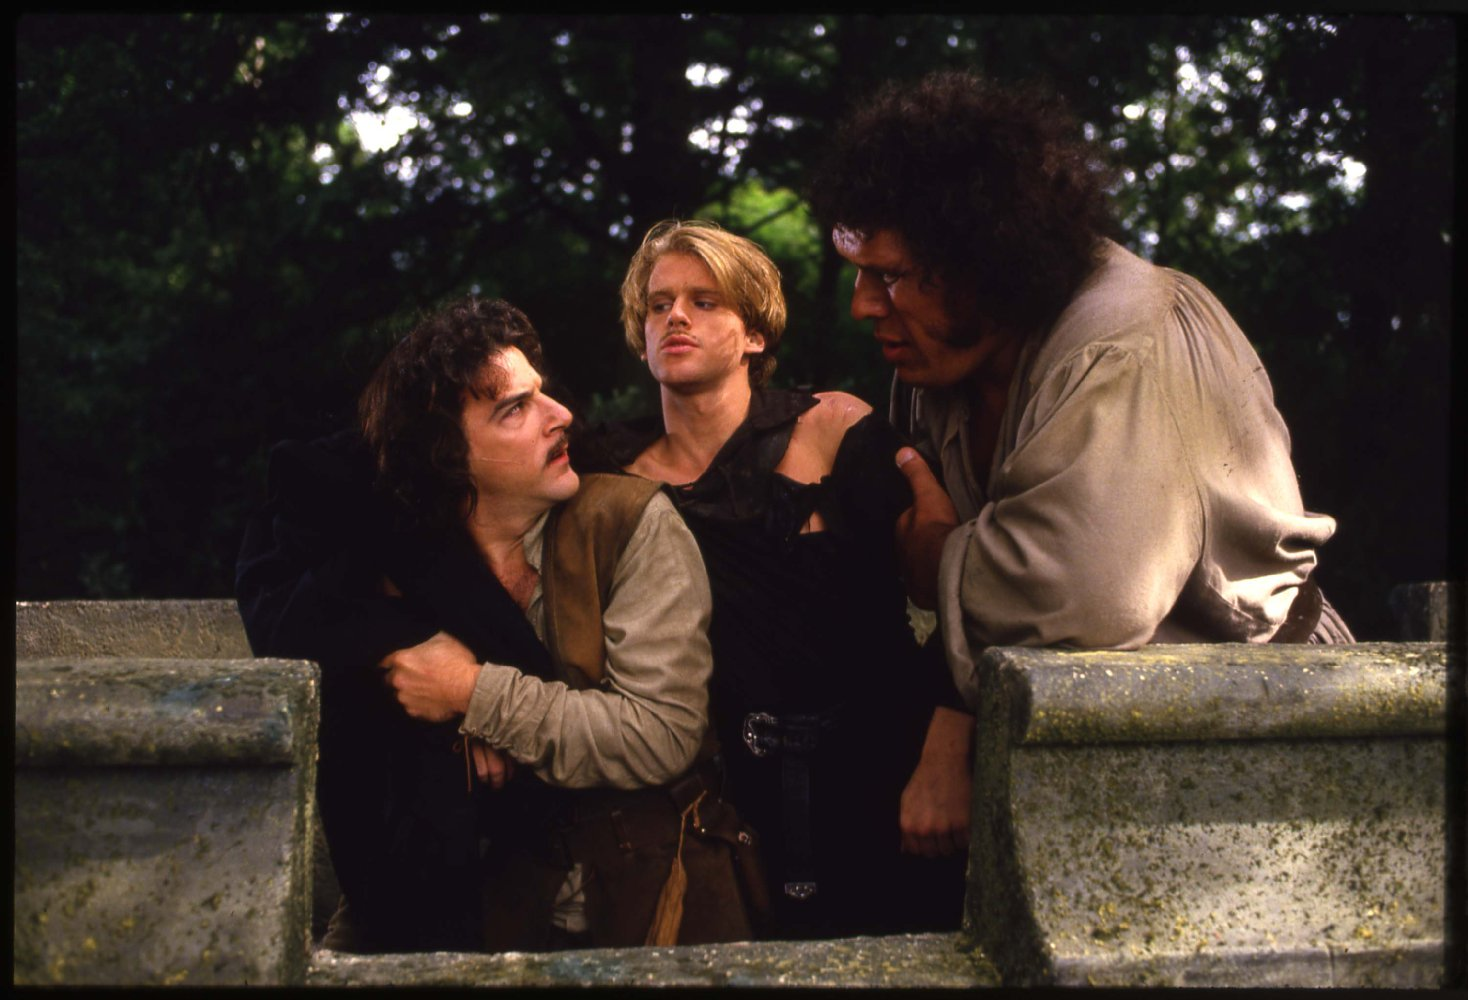 As the Princess Bride turns 30, we remember why it's such a classic